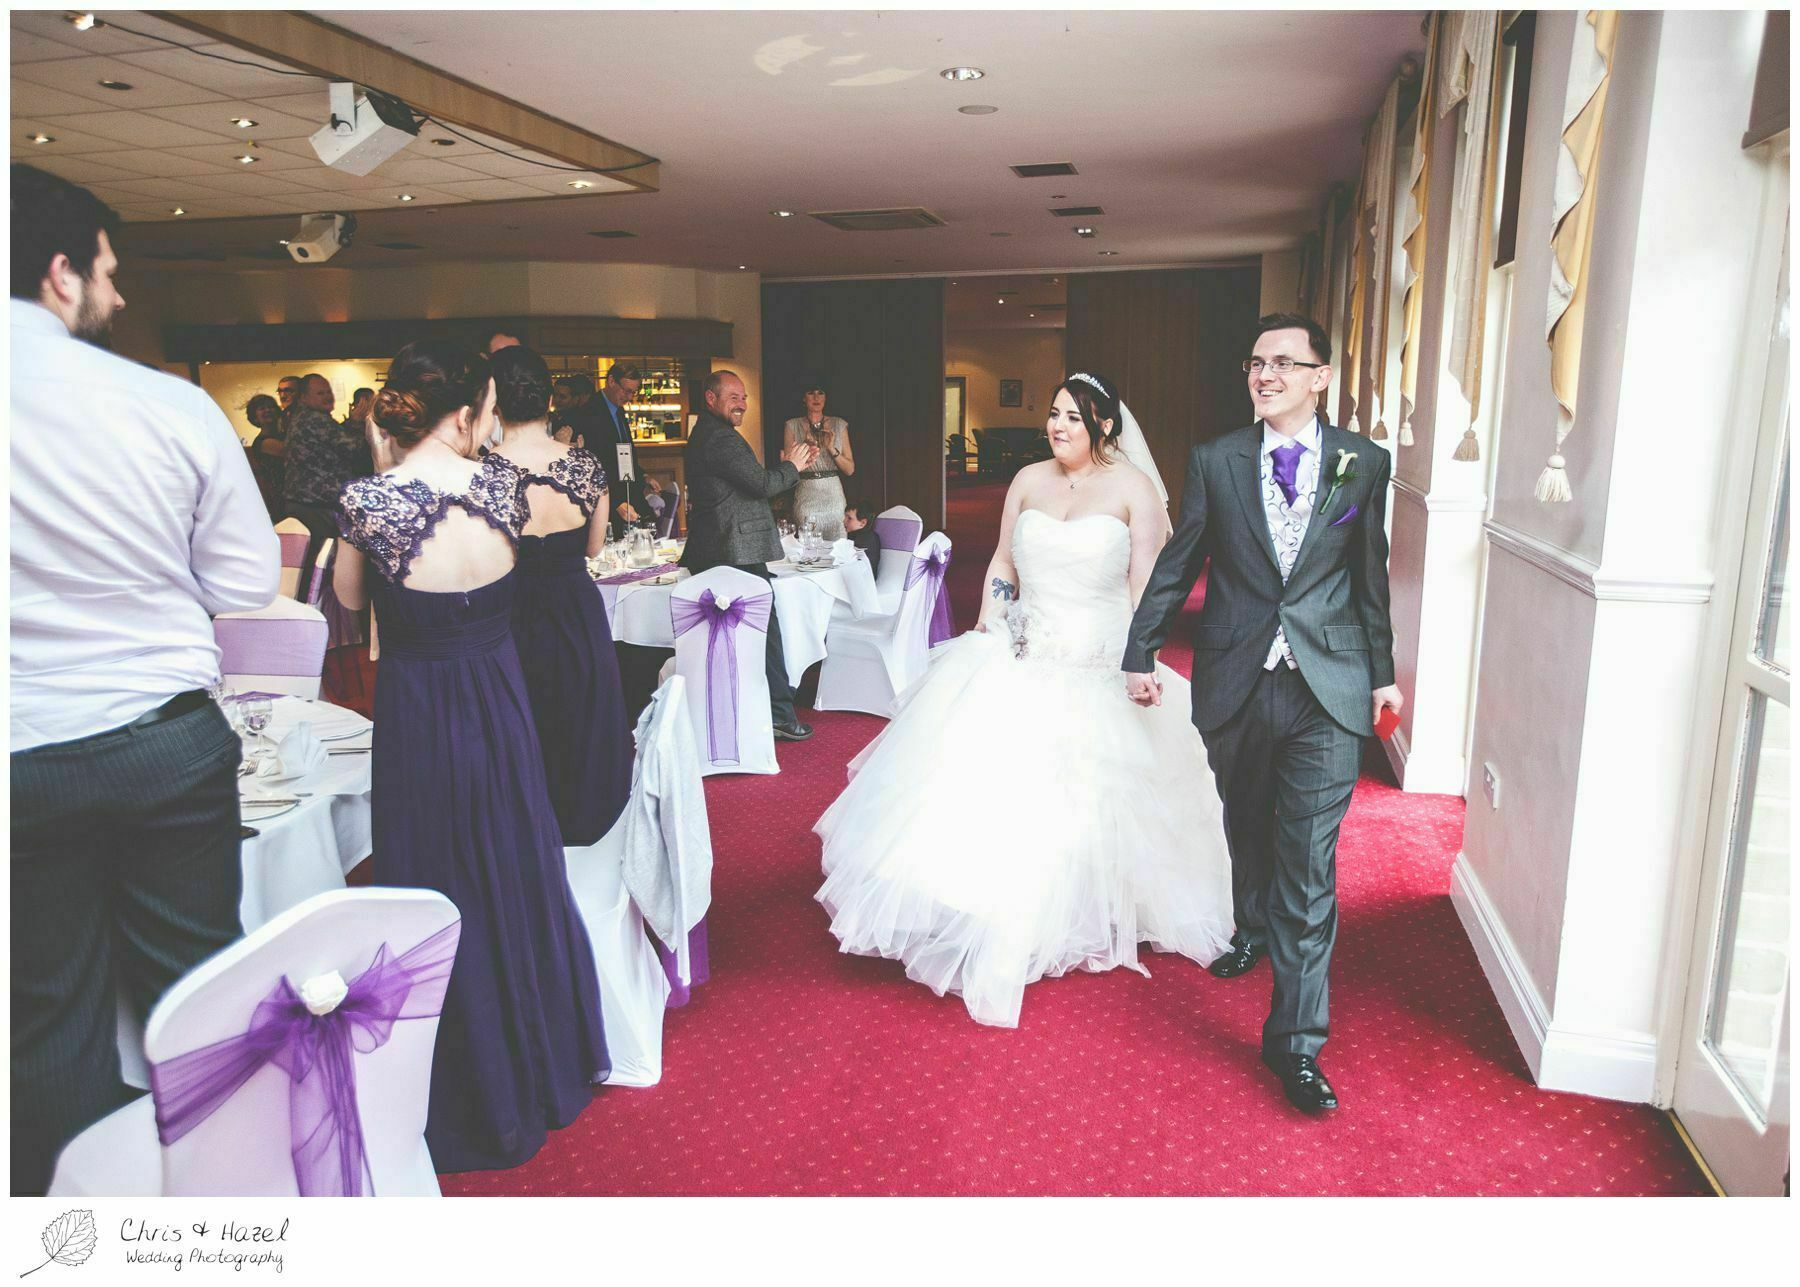 bride and groom entering for dinner, bagden hall wedding venue, documentary wedding photography, denny dale, huddersfield, Wedding Photographer, Bagden Hall, Wedding Photography, Chris and Hazel Wedding Photography, Alex tomenson, Vicky hunt